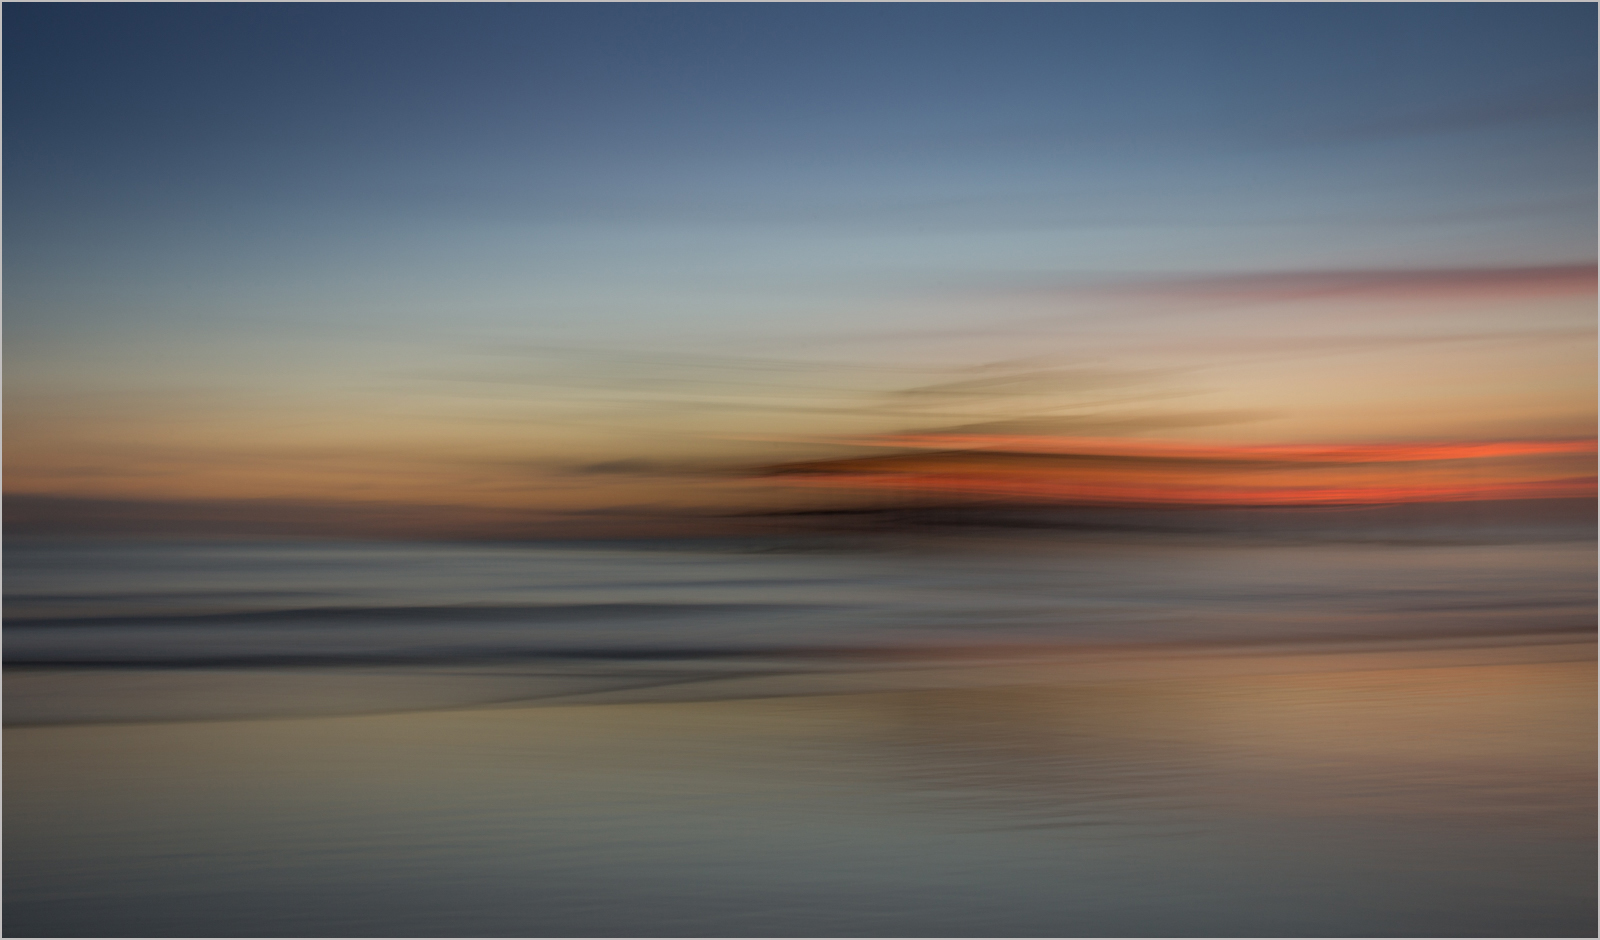 246_Brighton Sunset_Nicky Pascoe ARPS.jpg